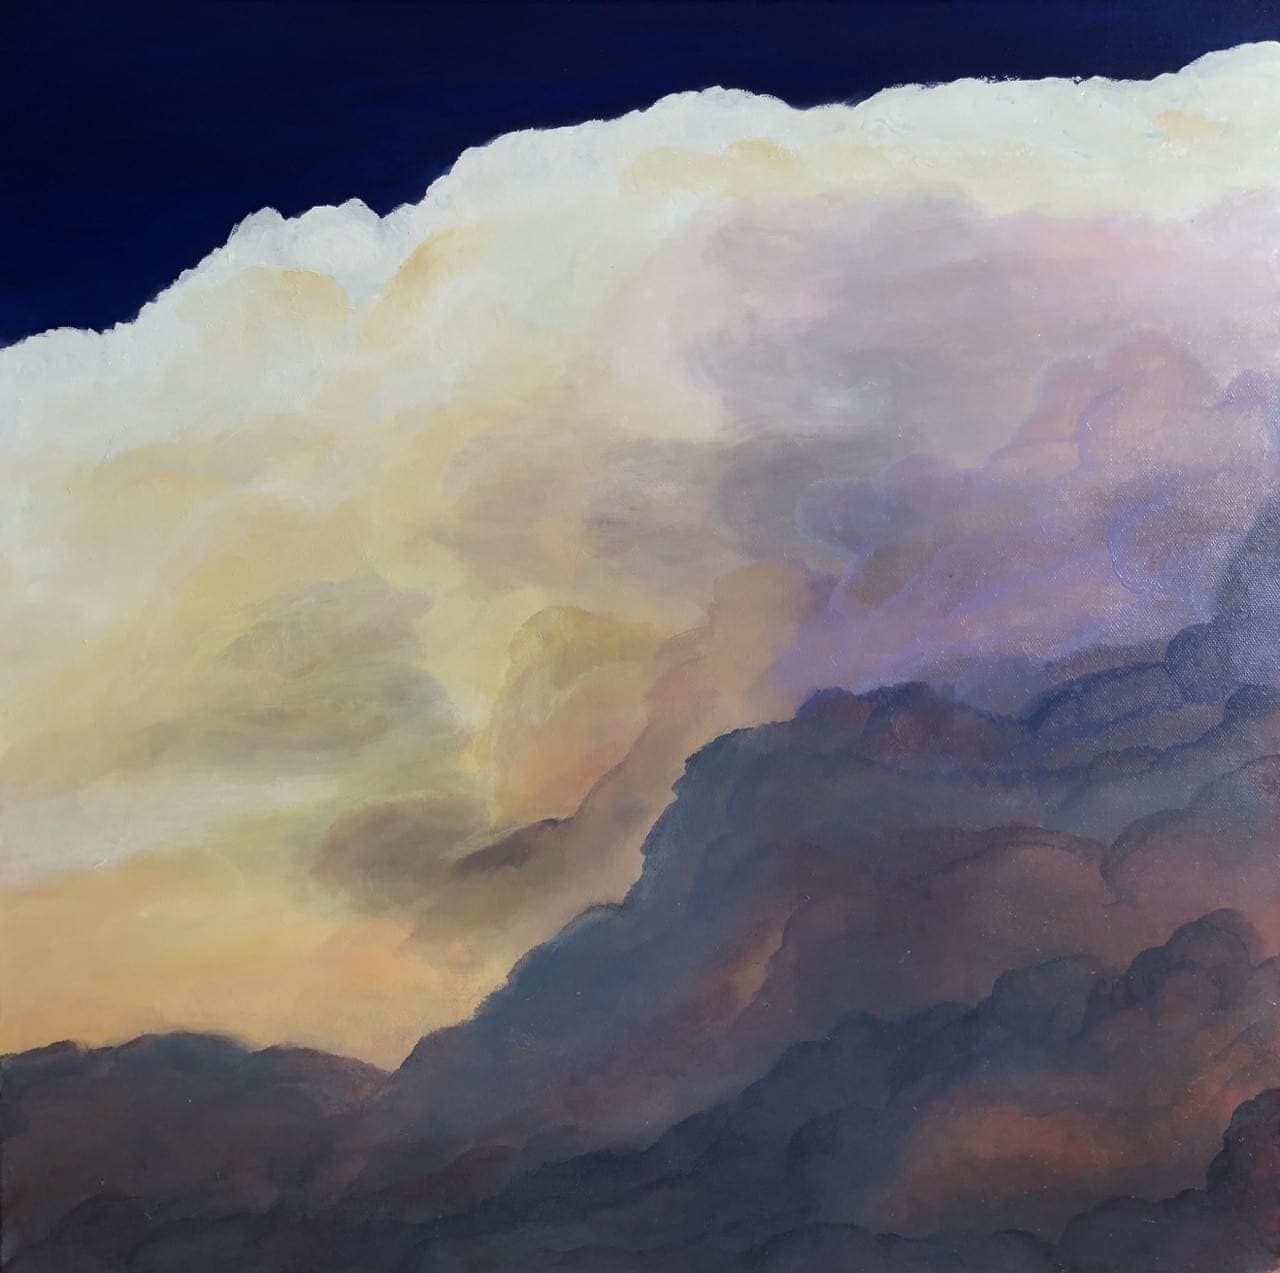 """""""Clouds II"""" an original oil on canvas Measuring width 23.5 x height 23.5 x depth 1.5 inches or 60 x 60 cm x 4 cm. Unframed. Ready to hang. Comes with a certificate of authenticity. #artistsupportpledge"""